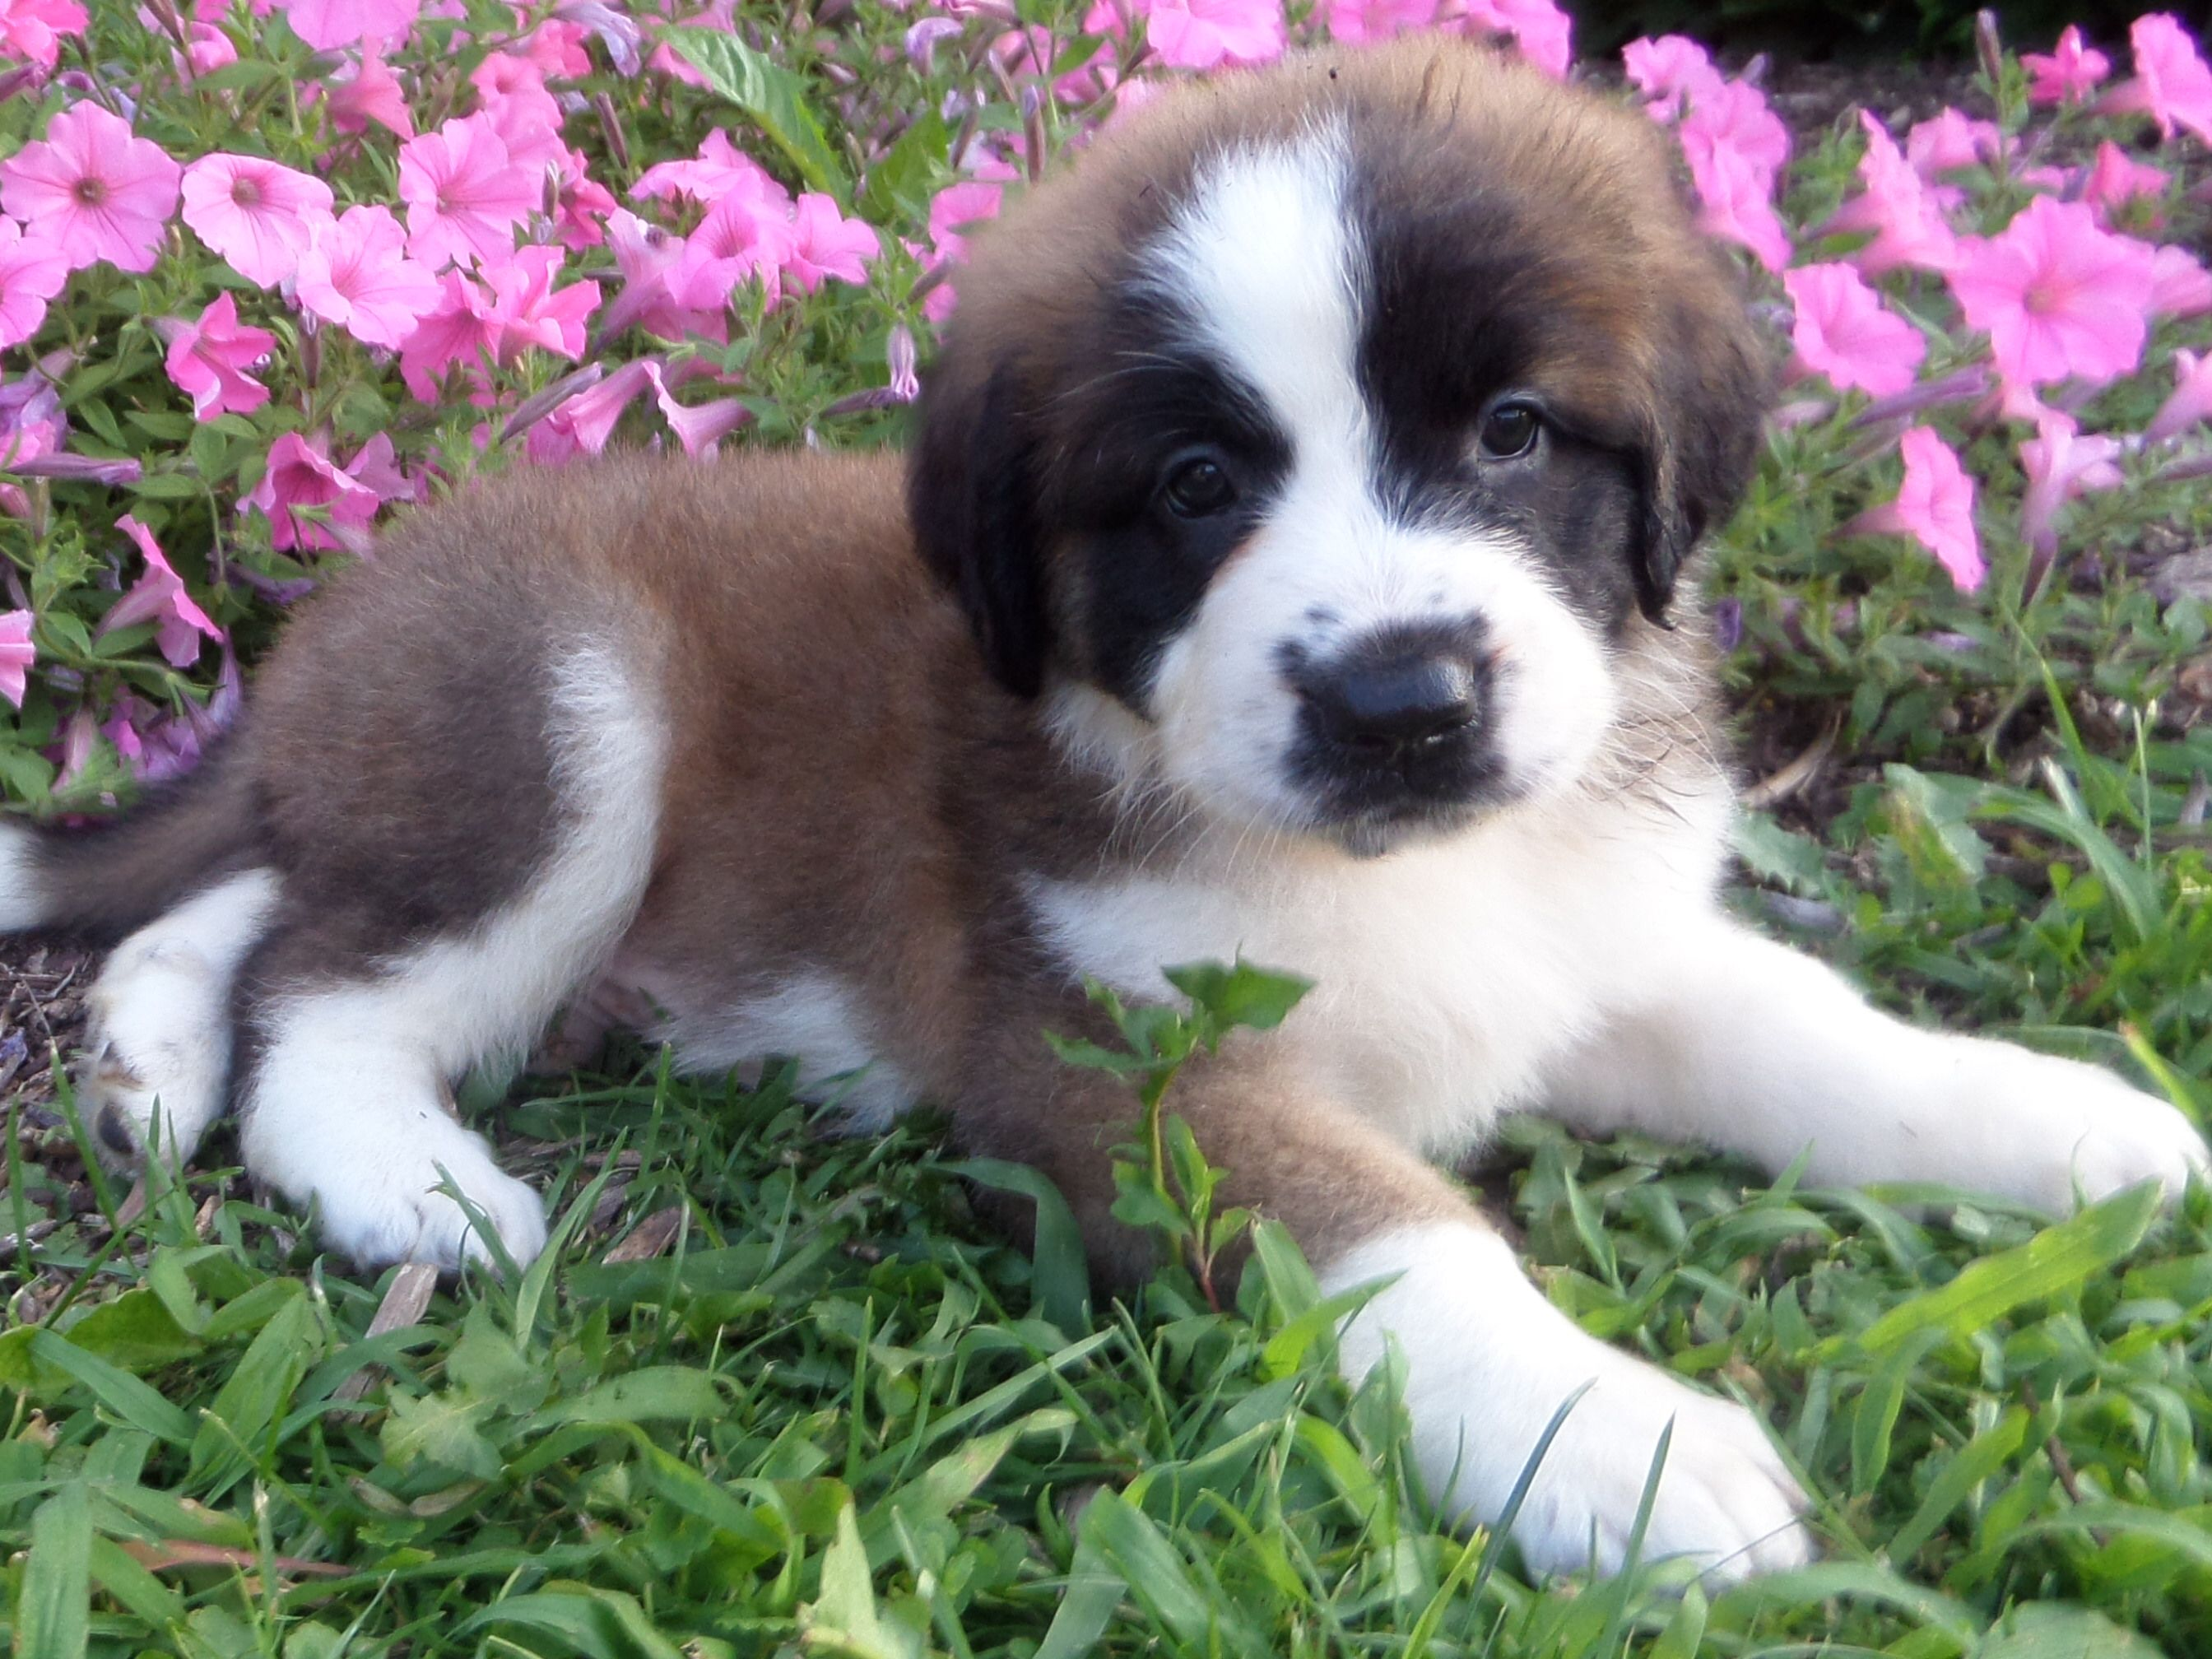 Puppies For Sale With Images Puppies St Bernard Puppy Cute Puppies